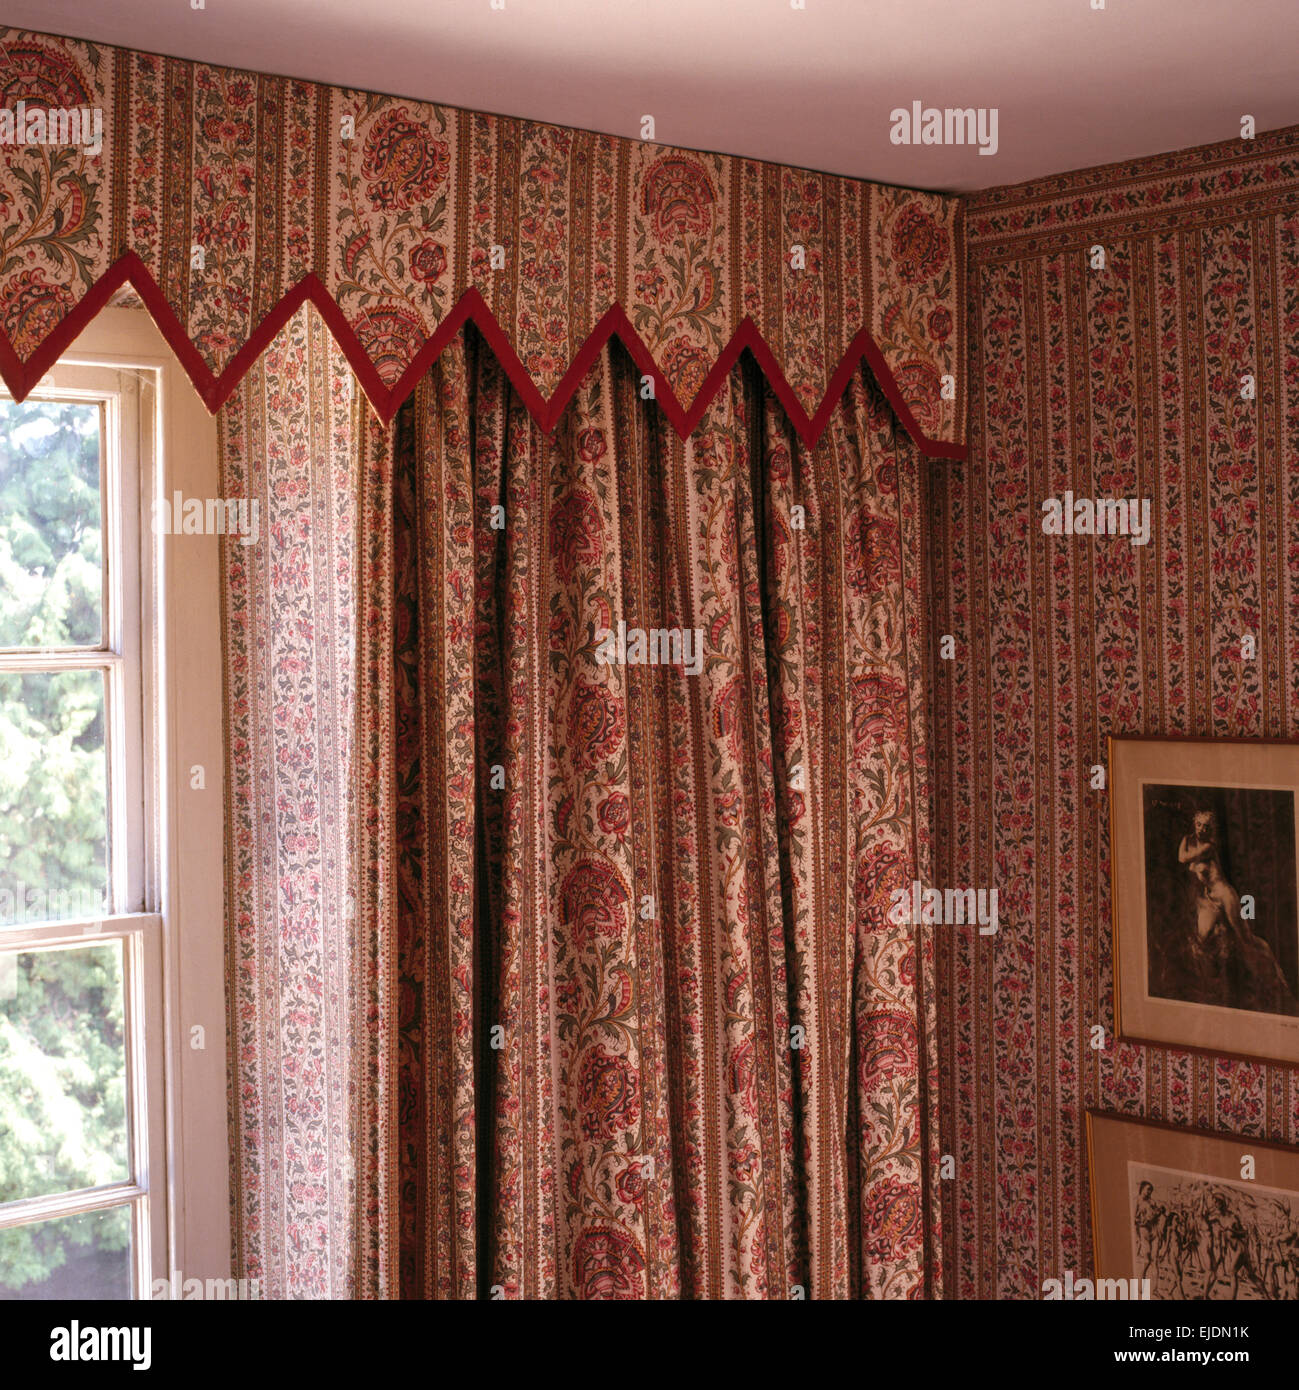 Close-up of patterned curtains and matching Gothic style pelmet and  wallpaper designed by Henrietta Spencer-Churchill